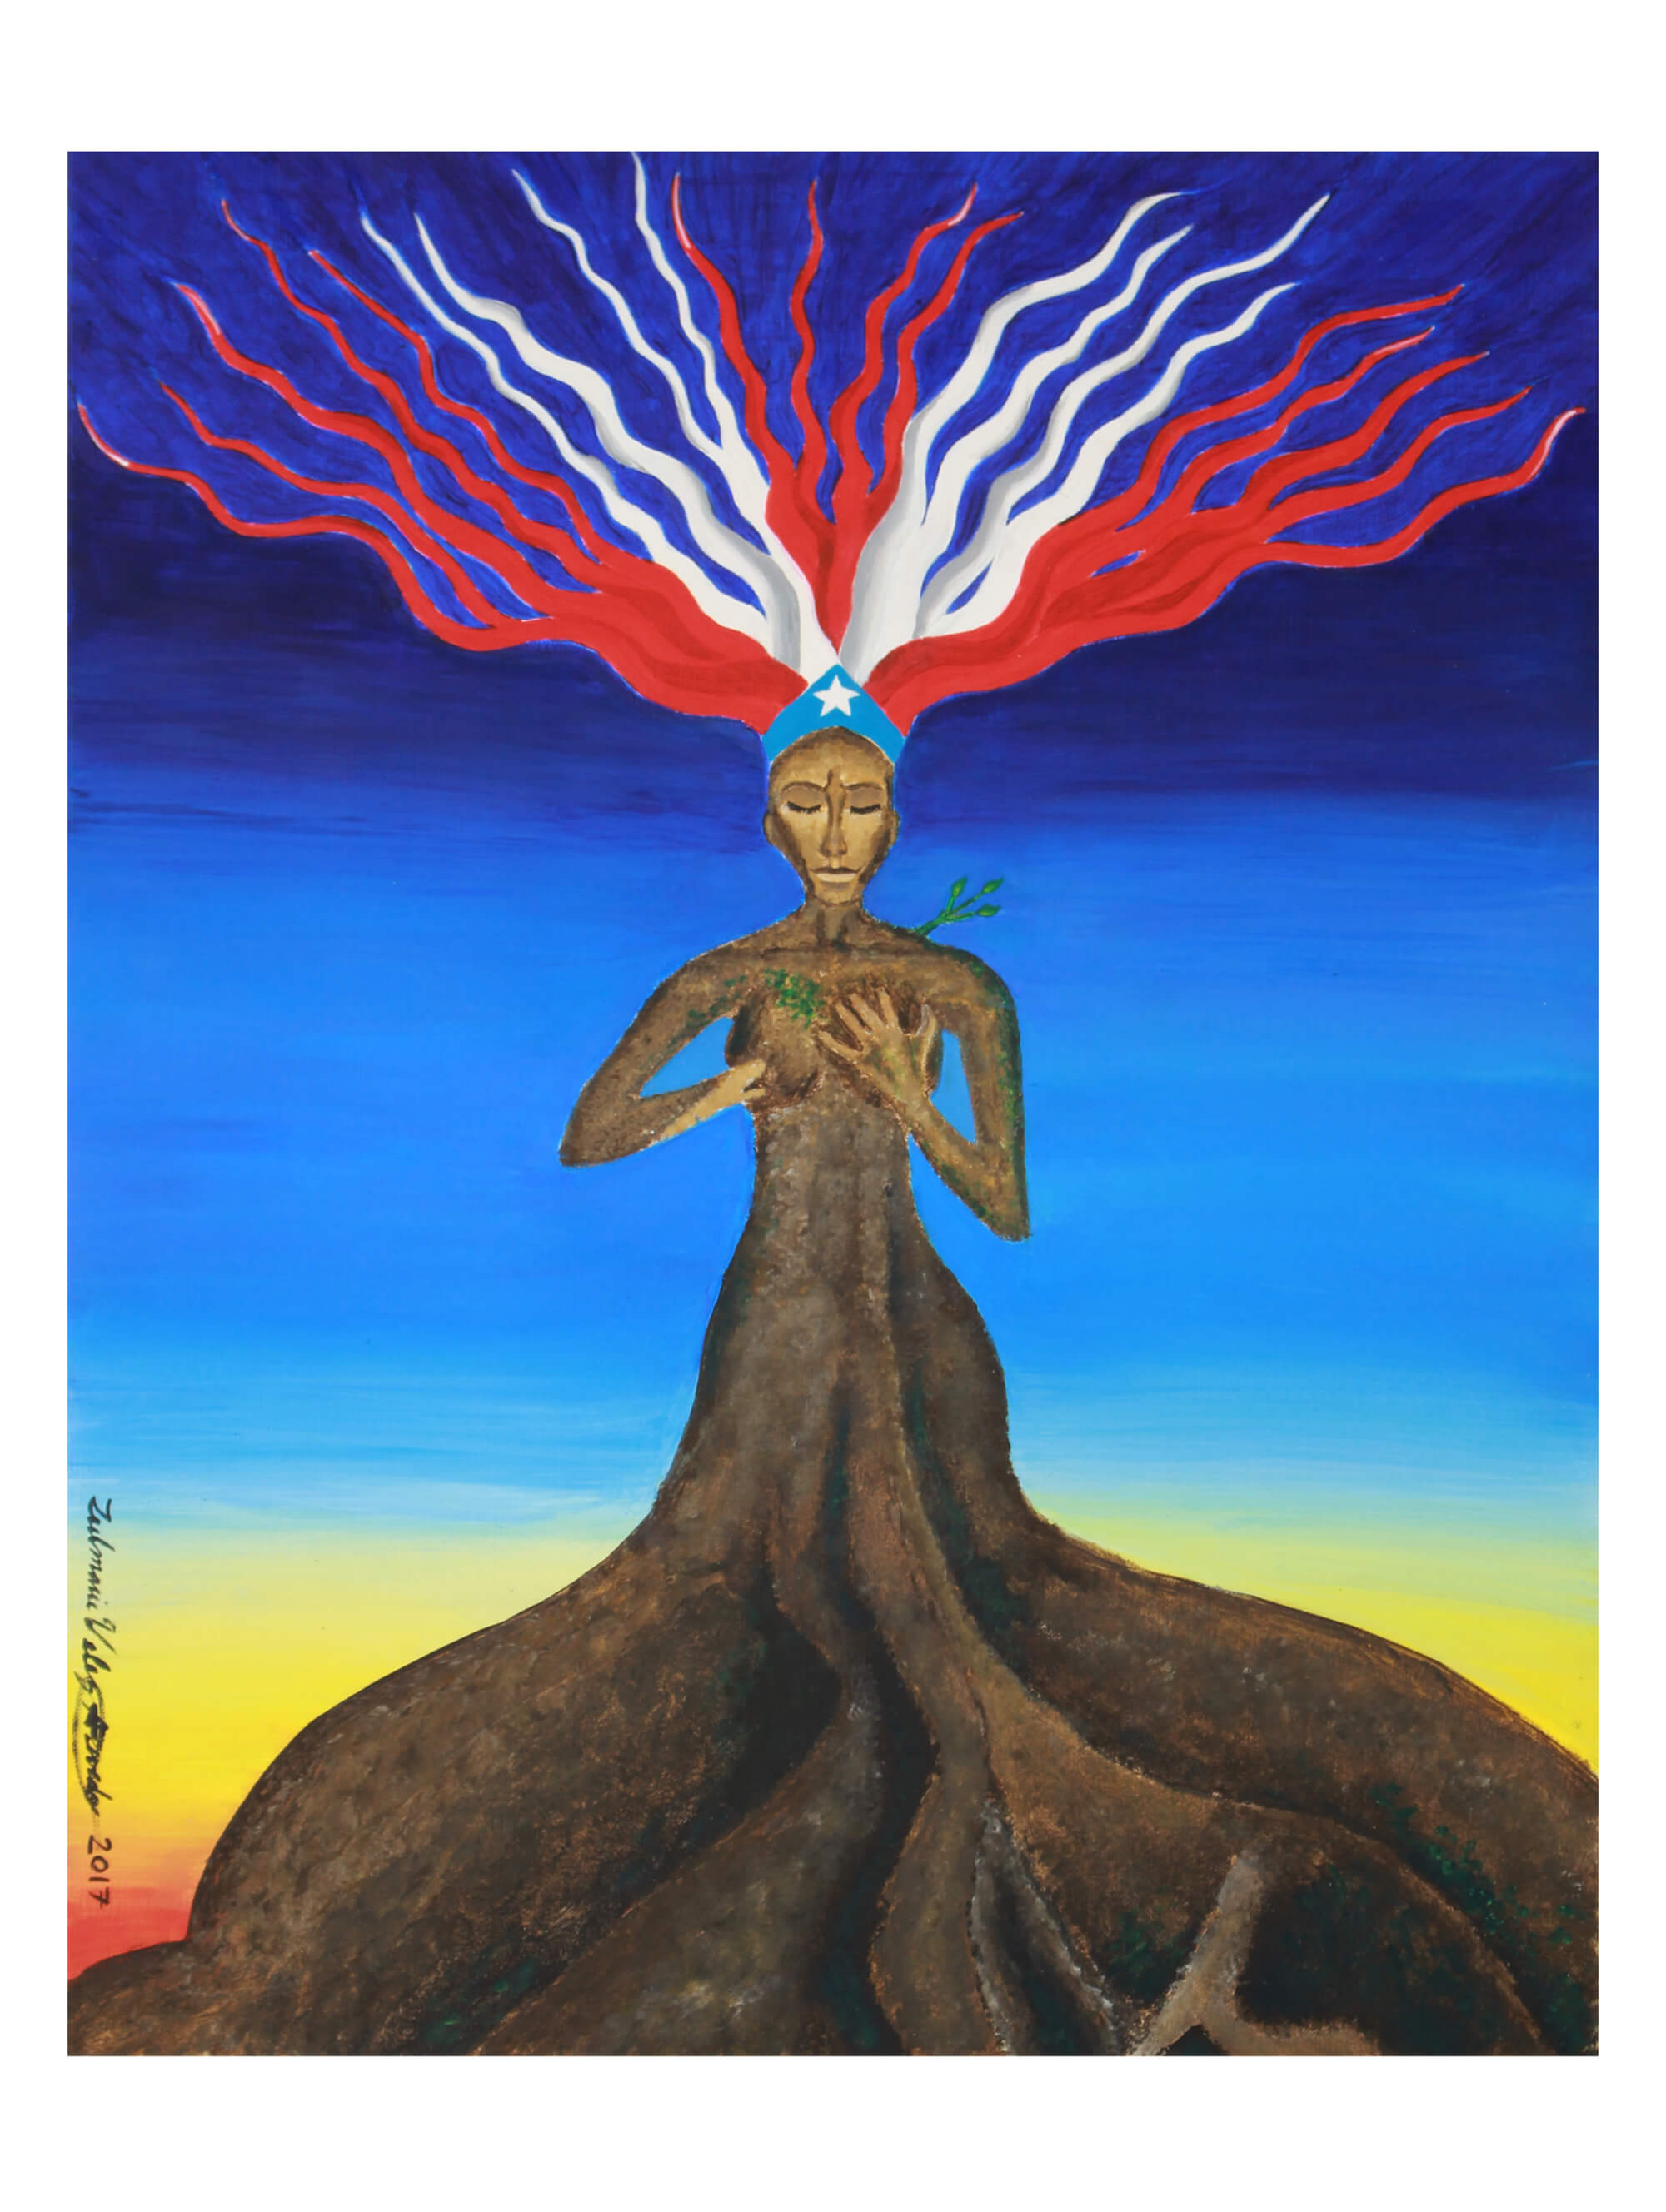 Print of reborn tree made of a woman torso with large exposed roots instead of legs, colorful electrified hair, vines growing from her chest and left shoulder by Zulmarie Vélez Acevedo